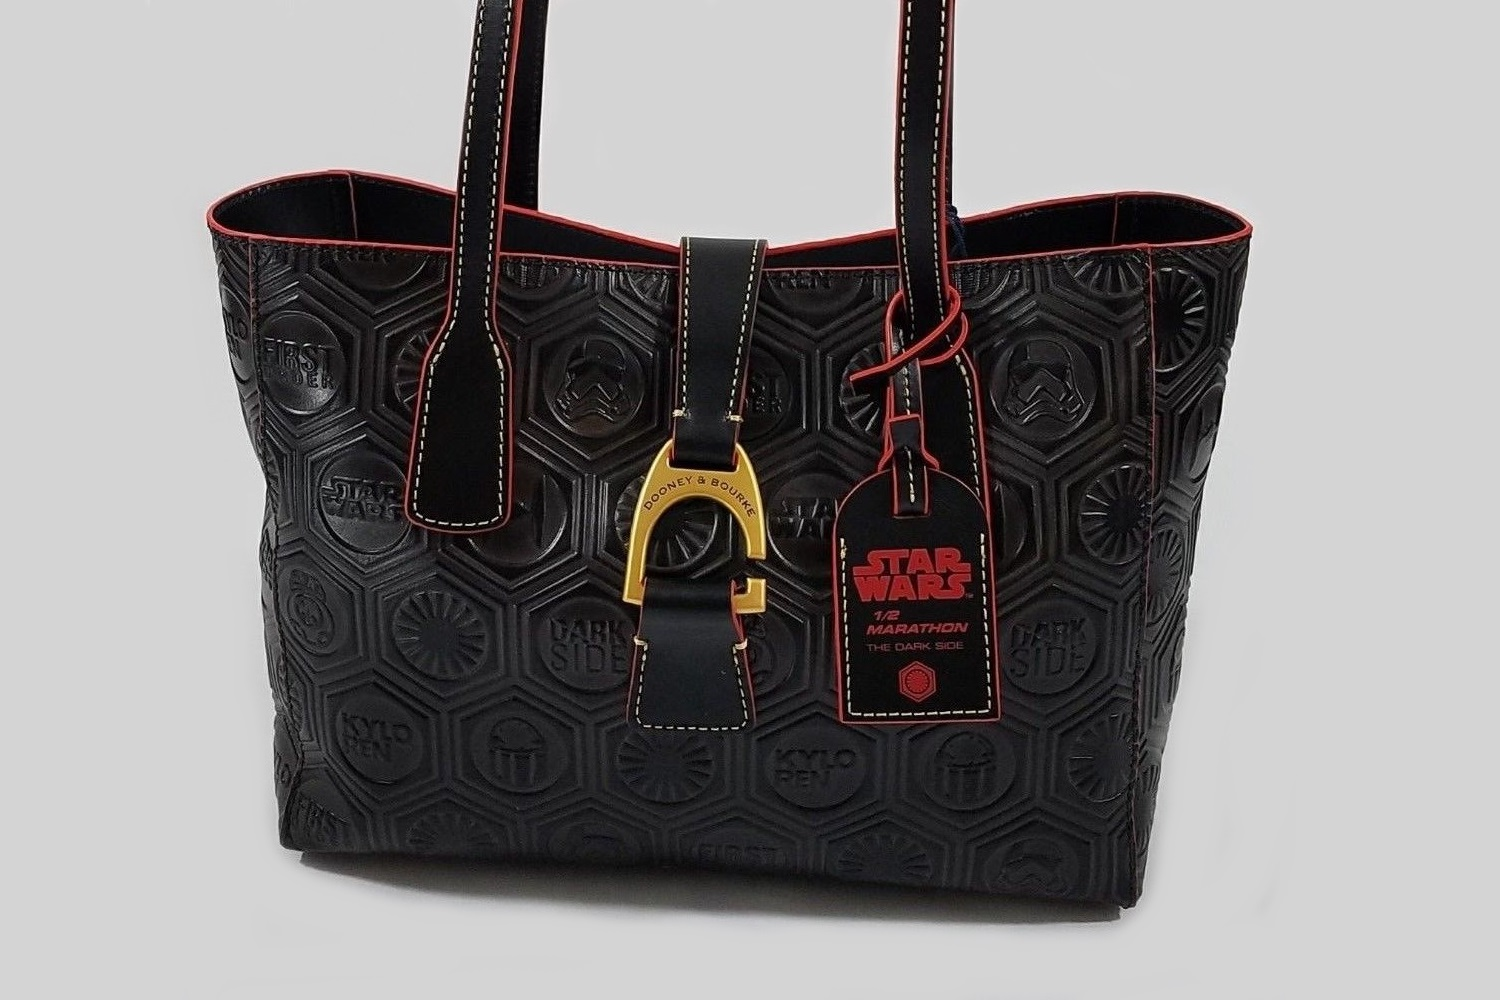 Dooney & Bourke x Star Wars Run Disney 2018 Handbags on Ebay